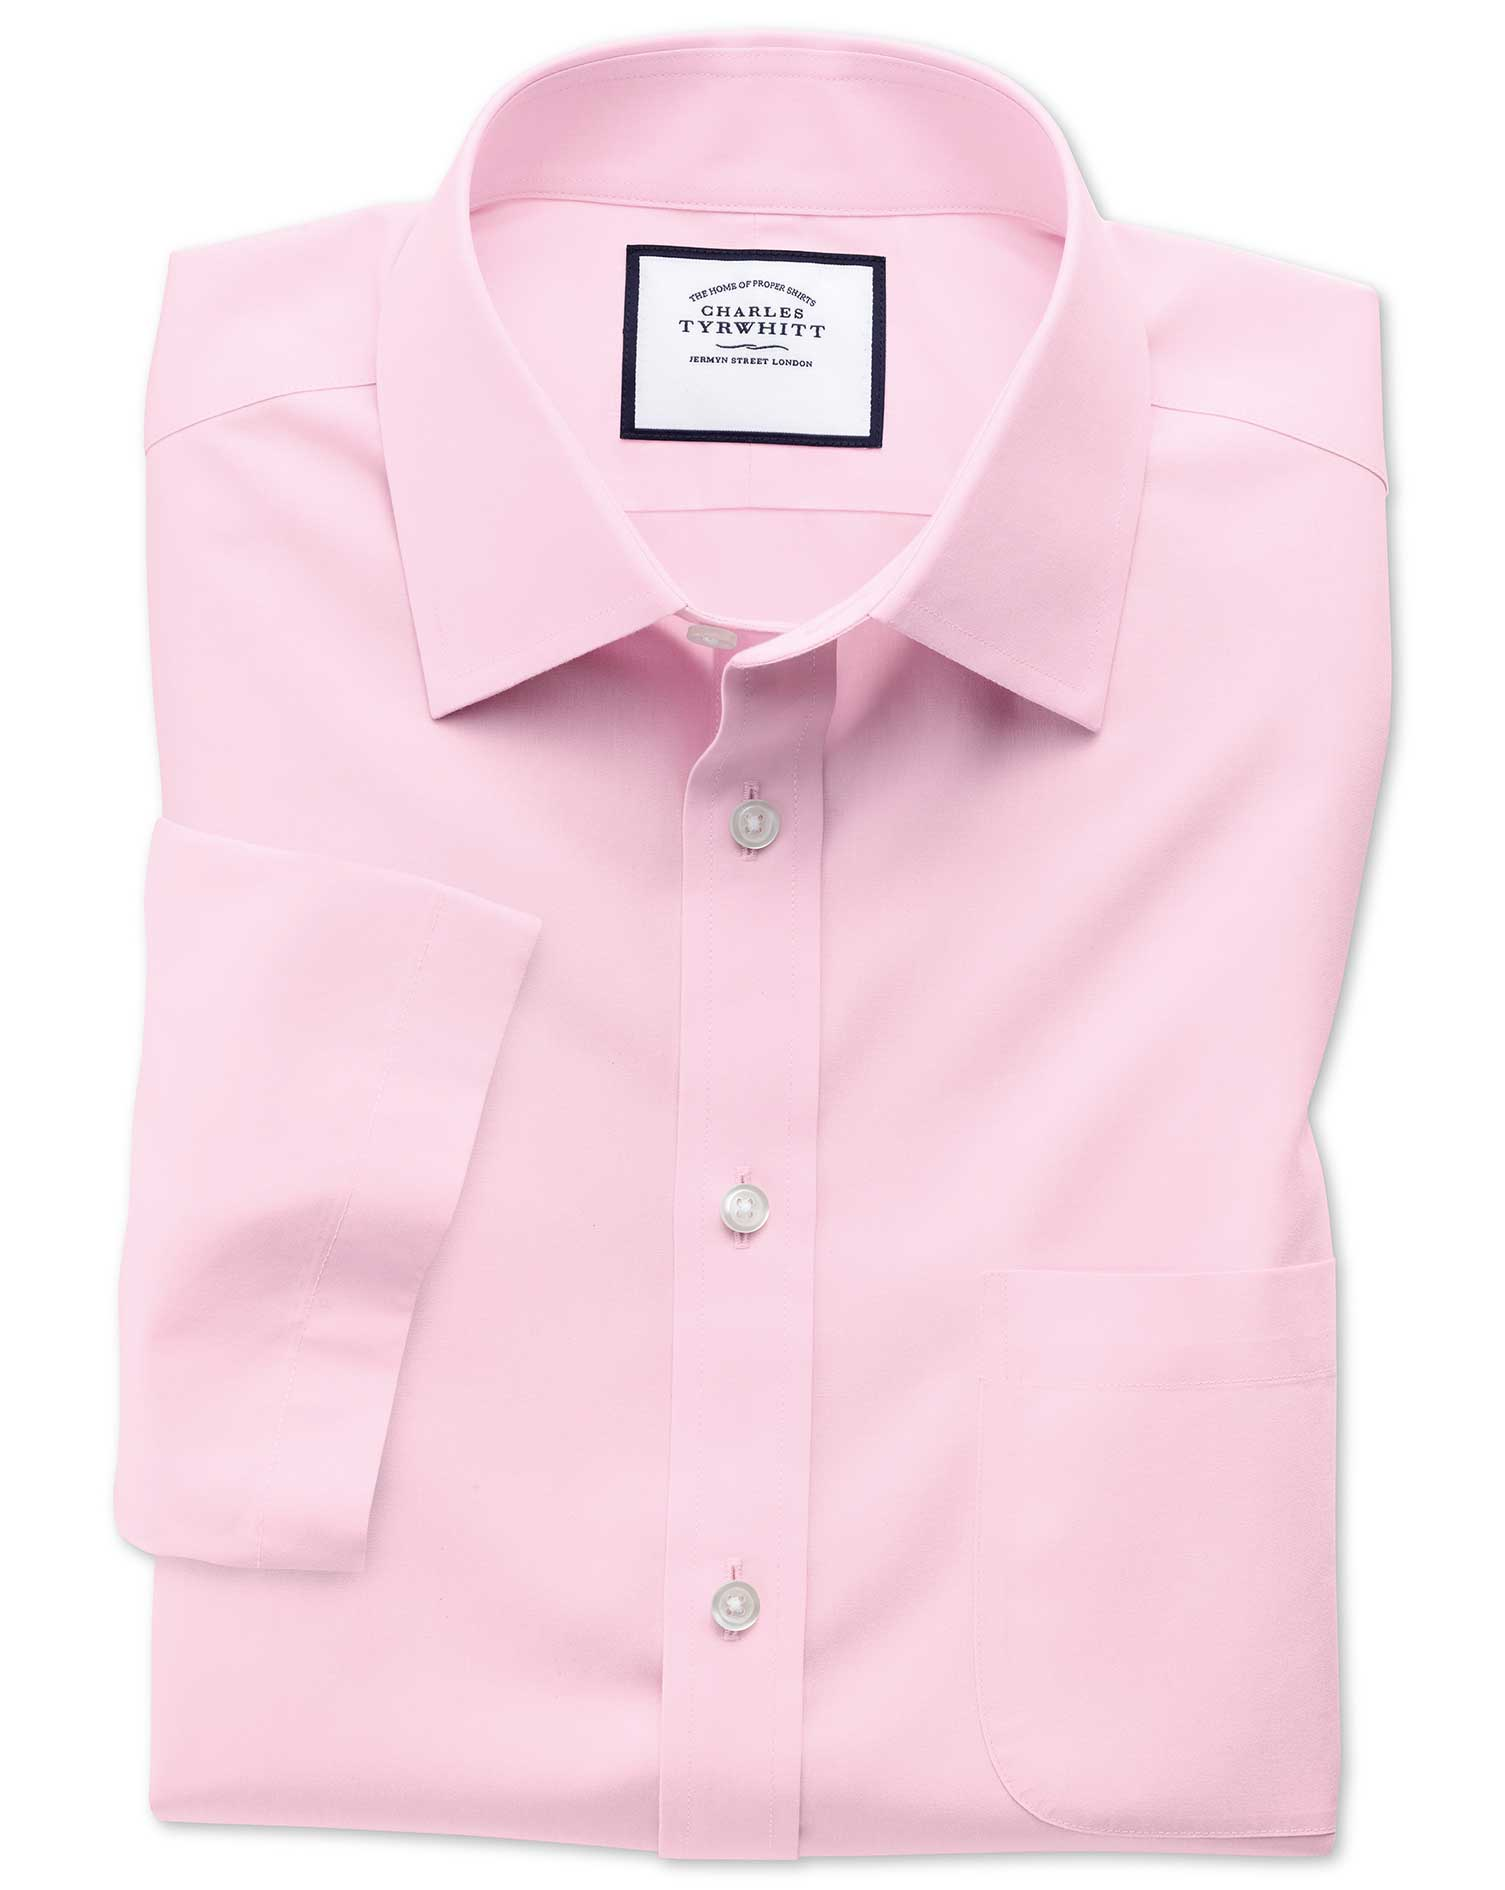 Classic Fit Non-Iron Poplin Short Sleeve Pink Cotton Formal Shirt Size 17/Short by Charles Tyrwhitt